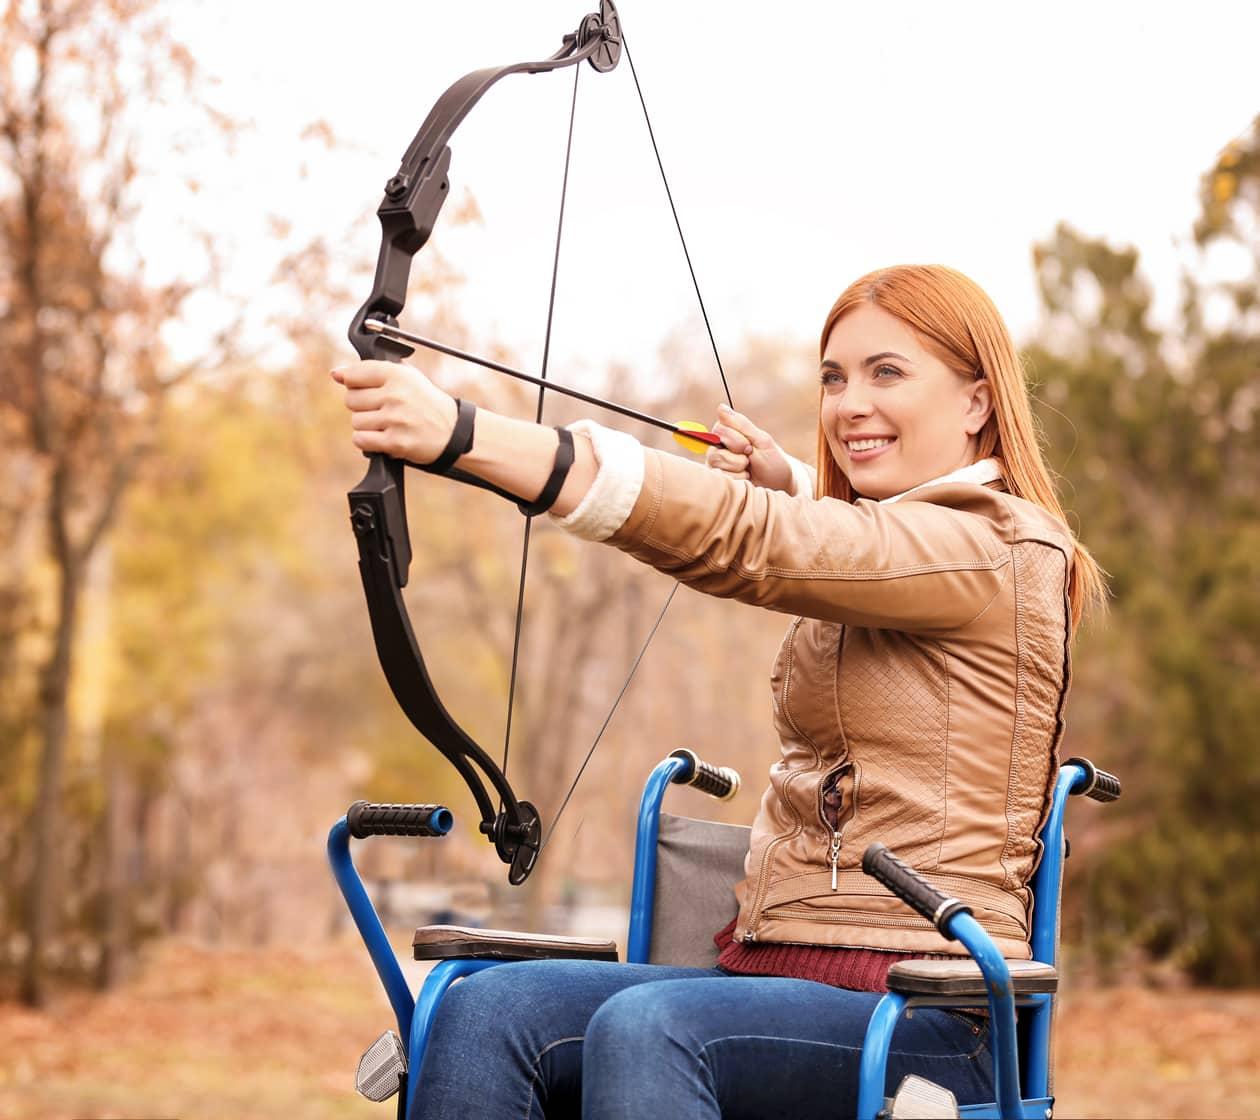 woman in wheelchair doing archery